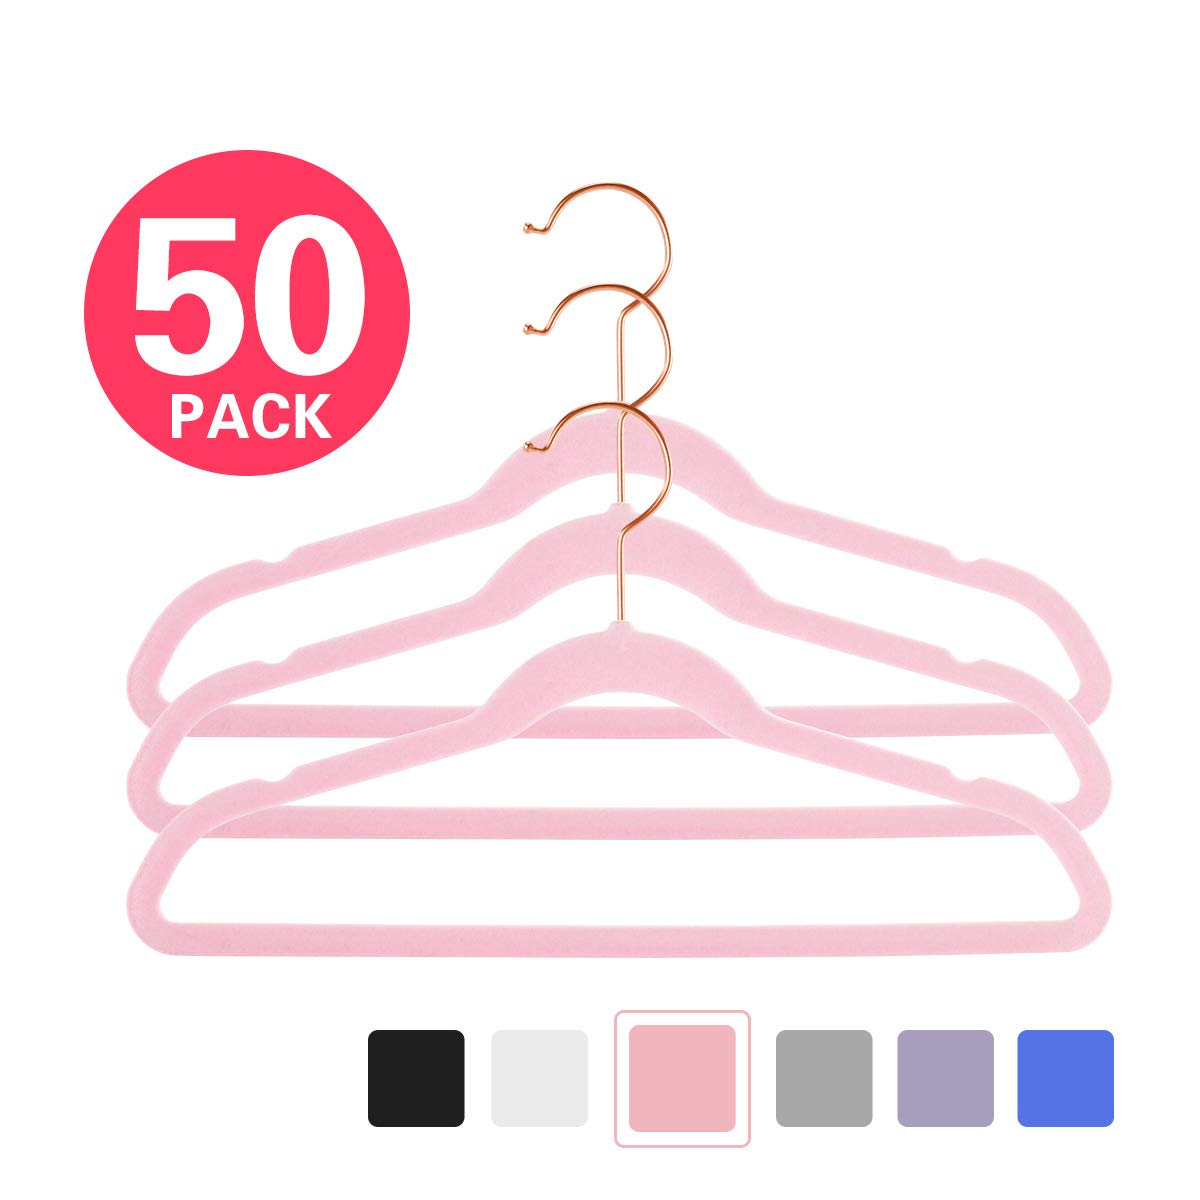 MIZGI Premium Kids Velvet Hangers (Pack of 50) 14'' Wide with Copper/Rose Gold Hooks,Space Saving Ultrathin,Nonslip Hangers use for Petite Junior Children's Skirt Dress Pants,Clothes Hangers-Pink